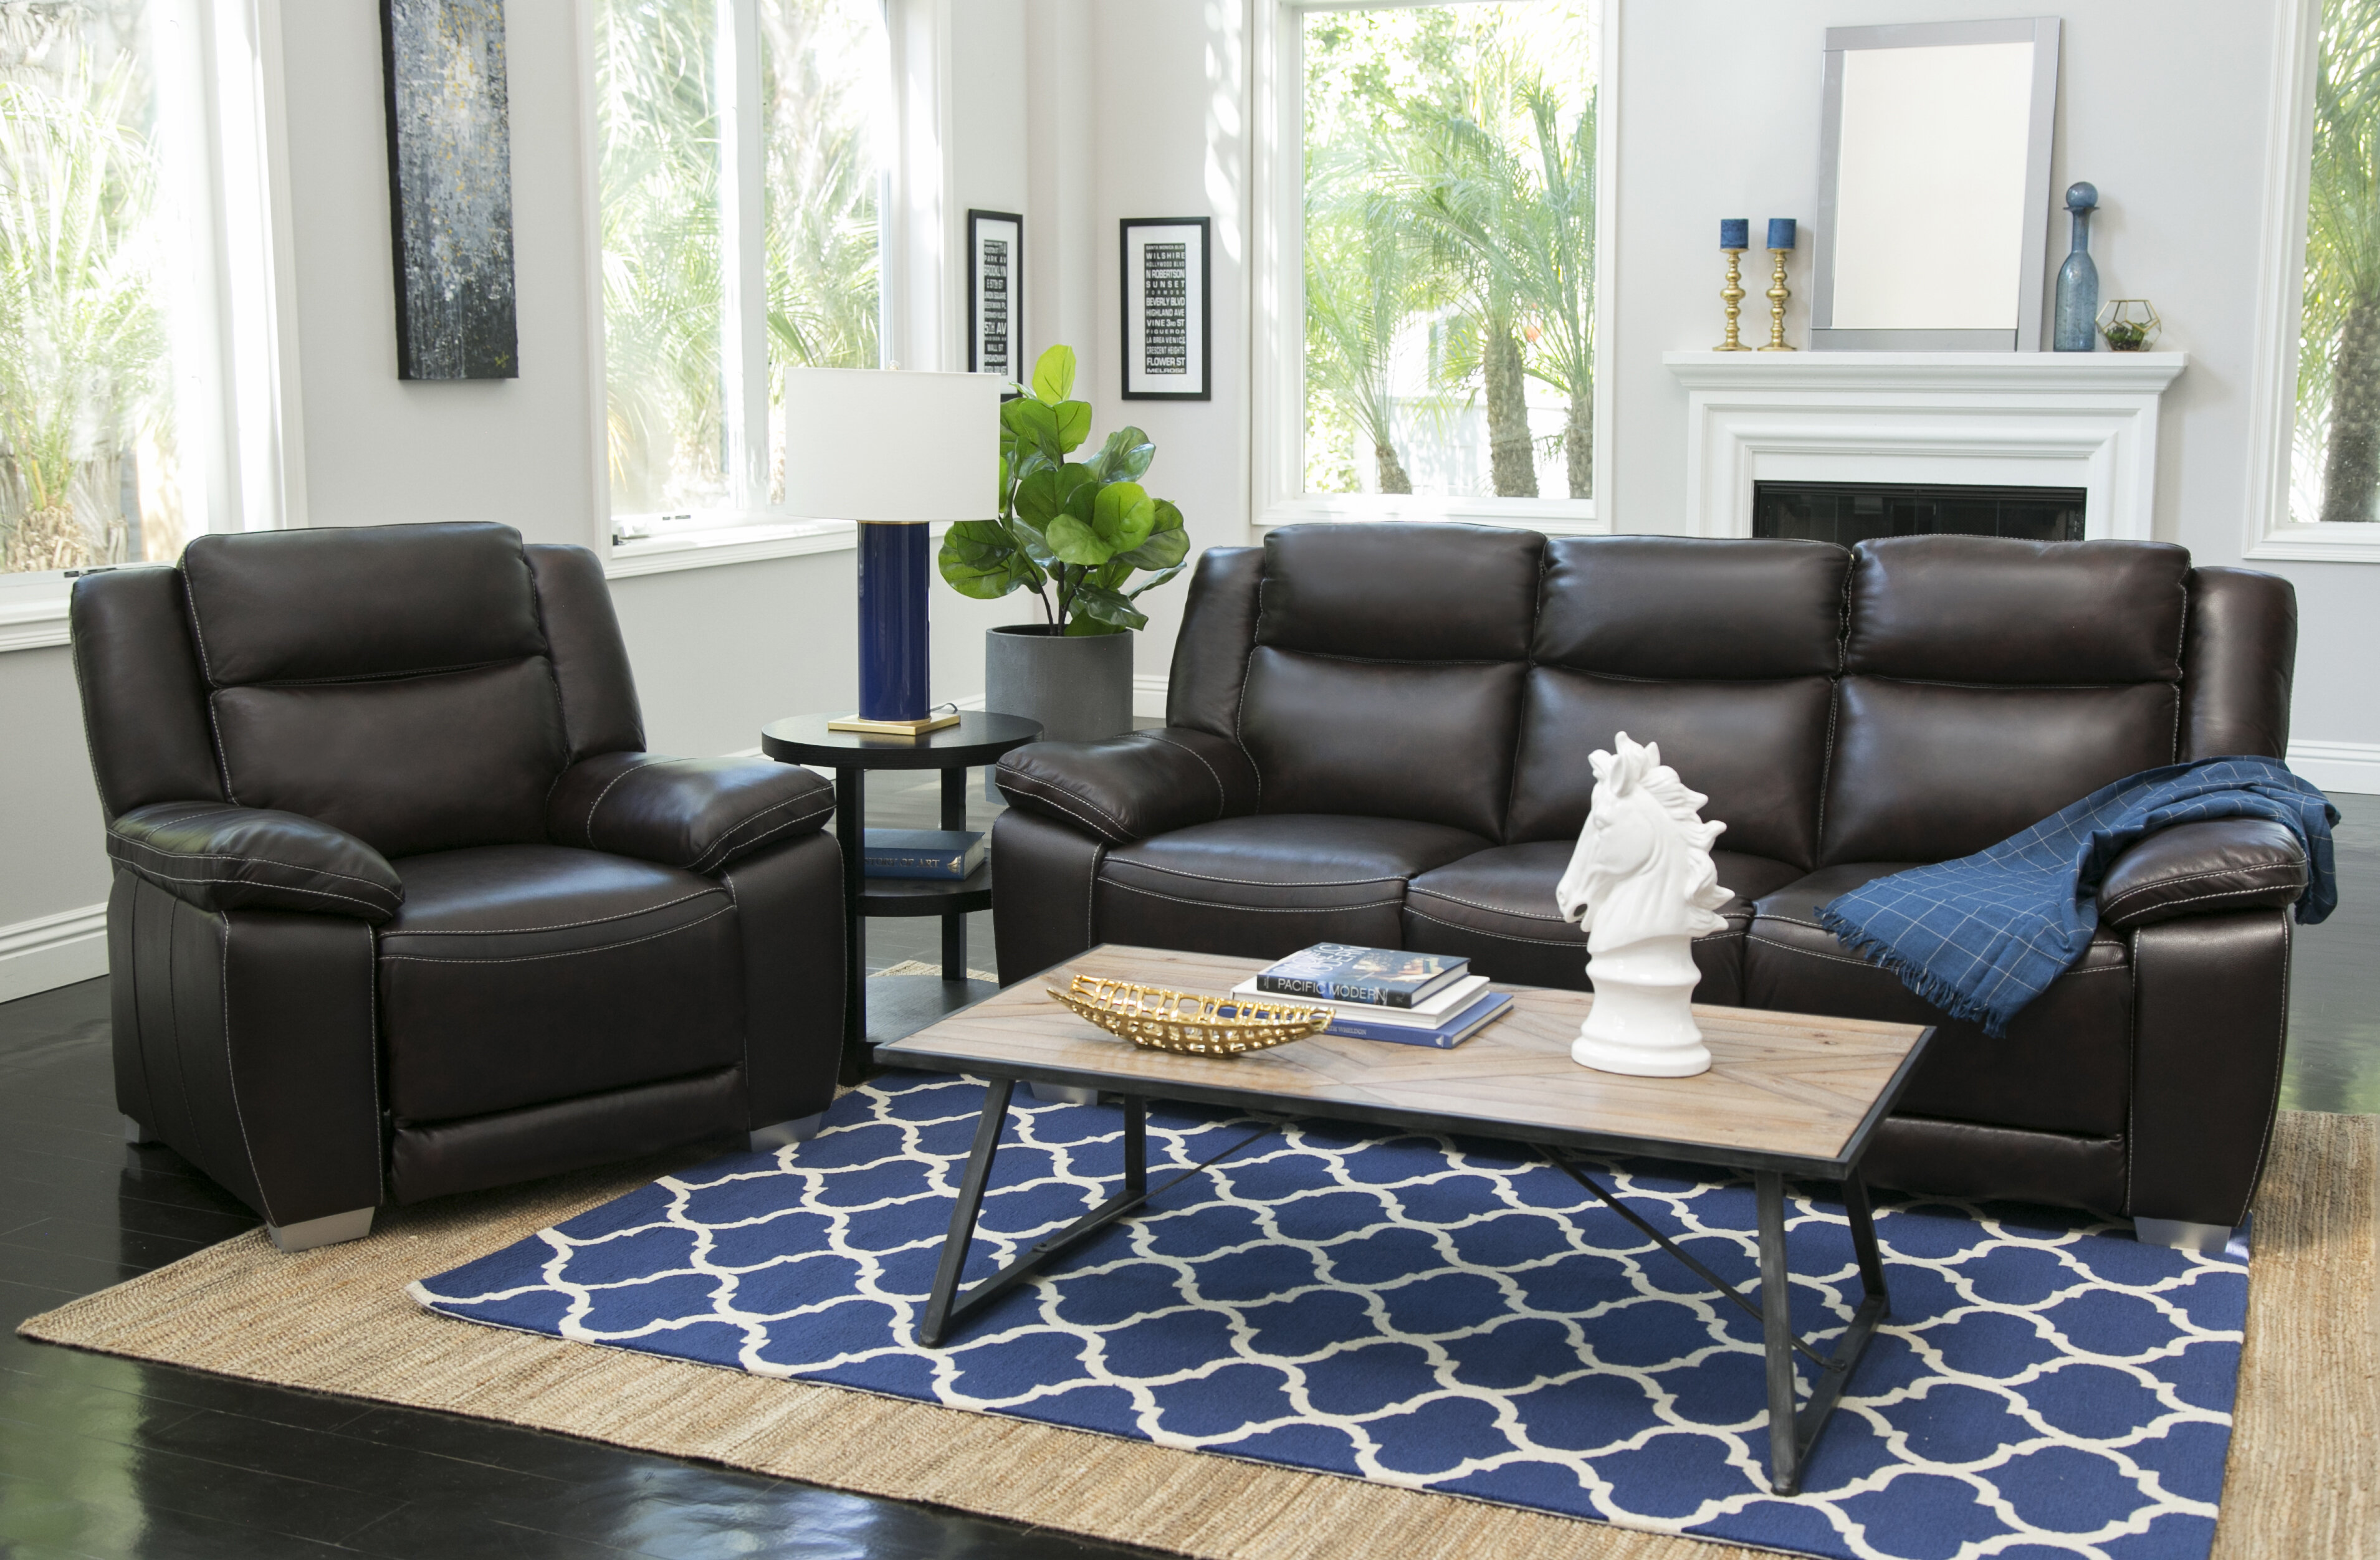 Red barrel studio evansburg reclining 2 piece leather living room set wayfair ca